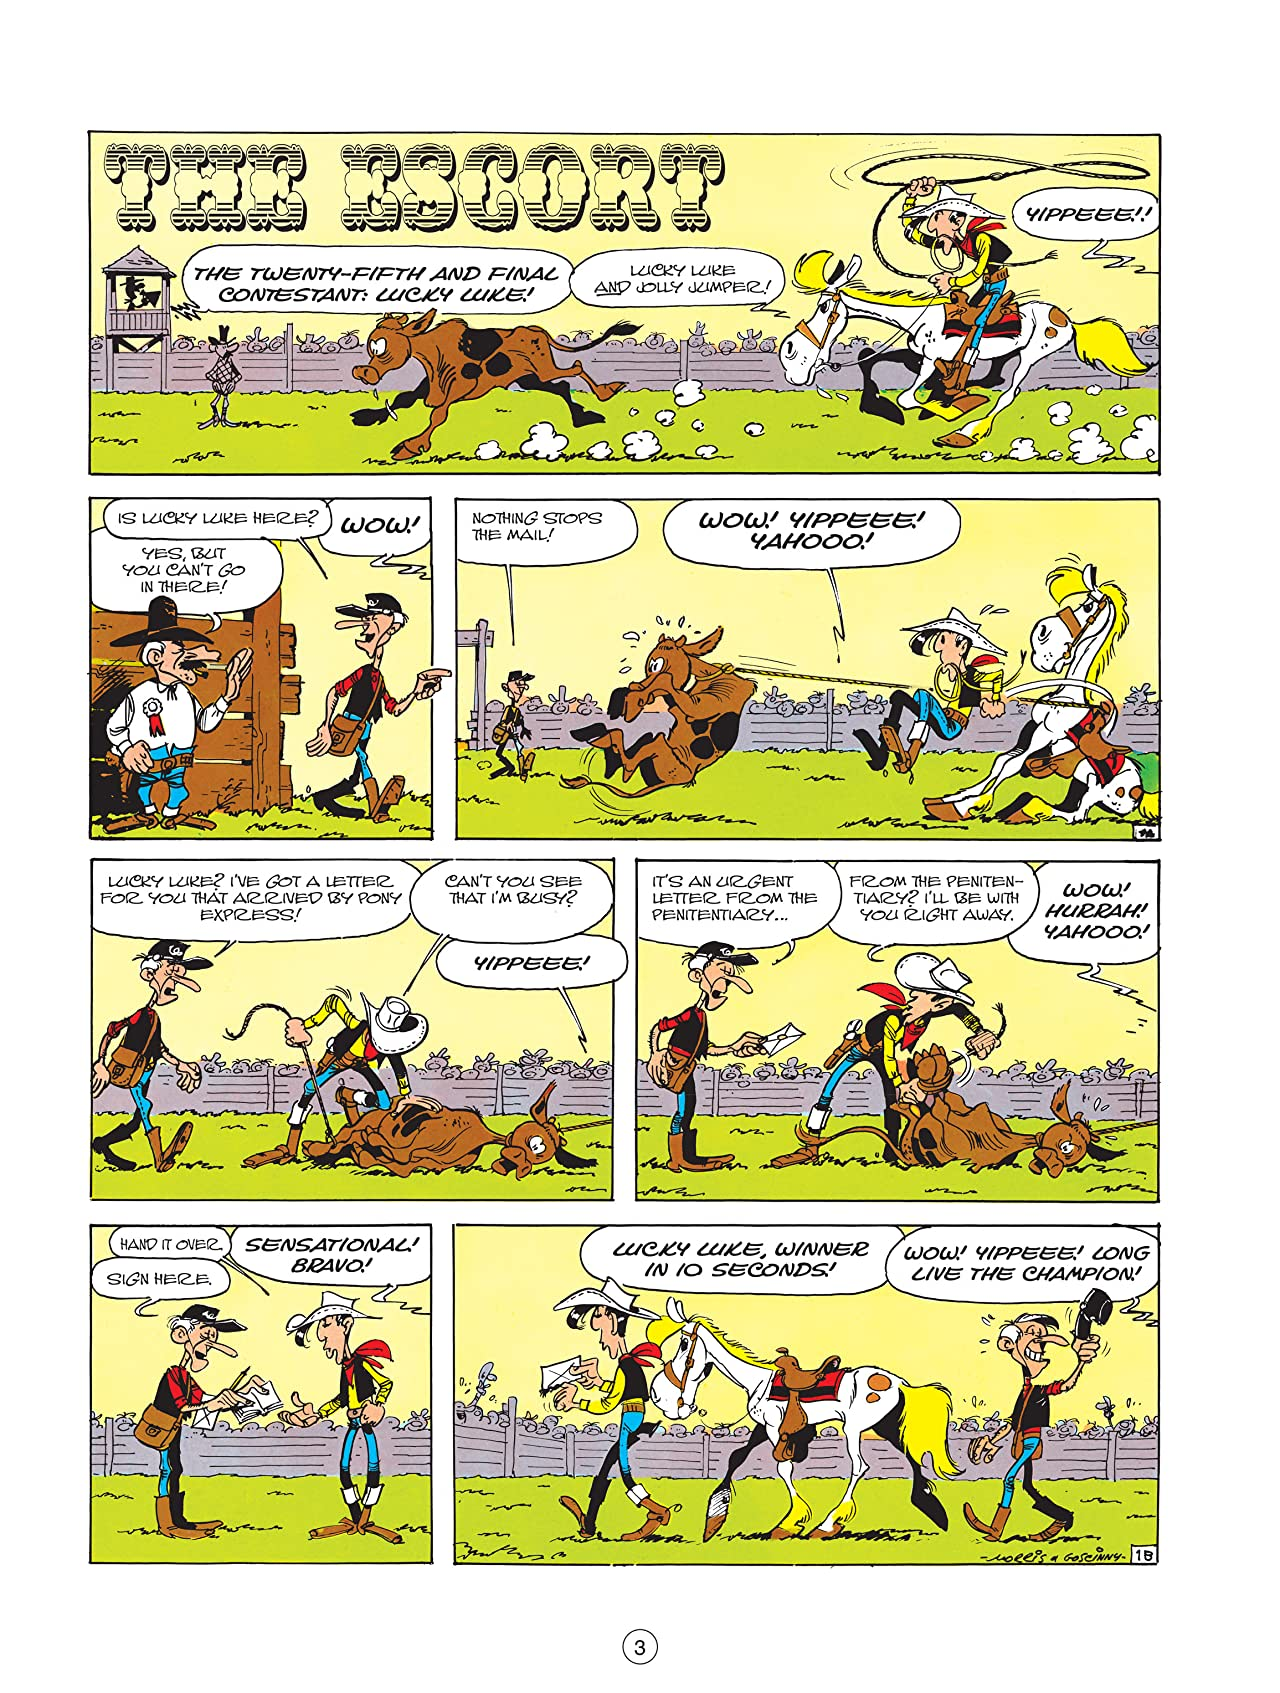 Lucky Luke Vol. 18: The Escort